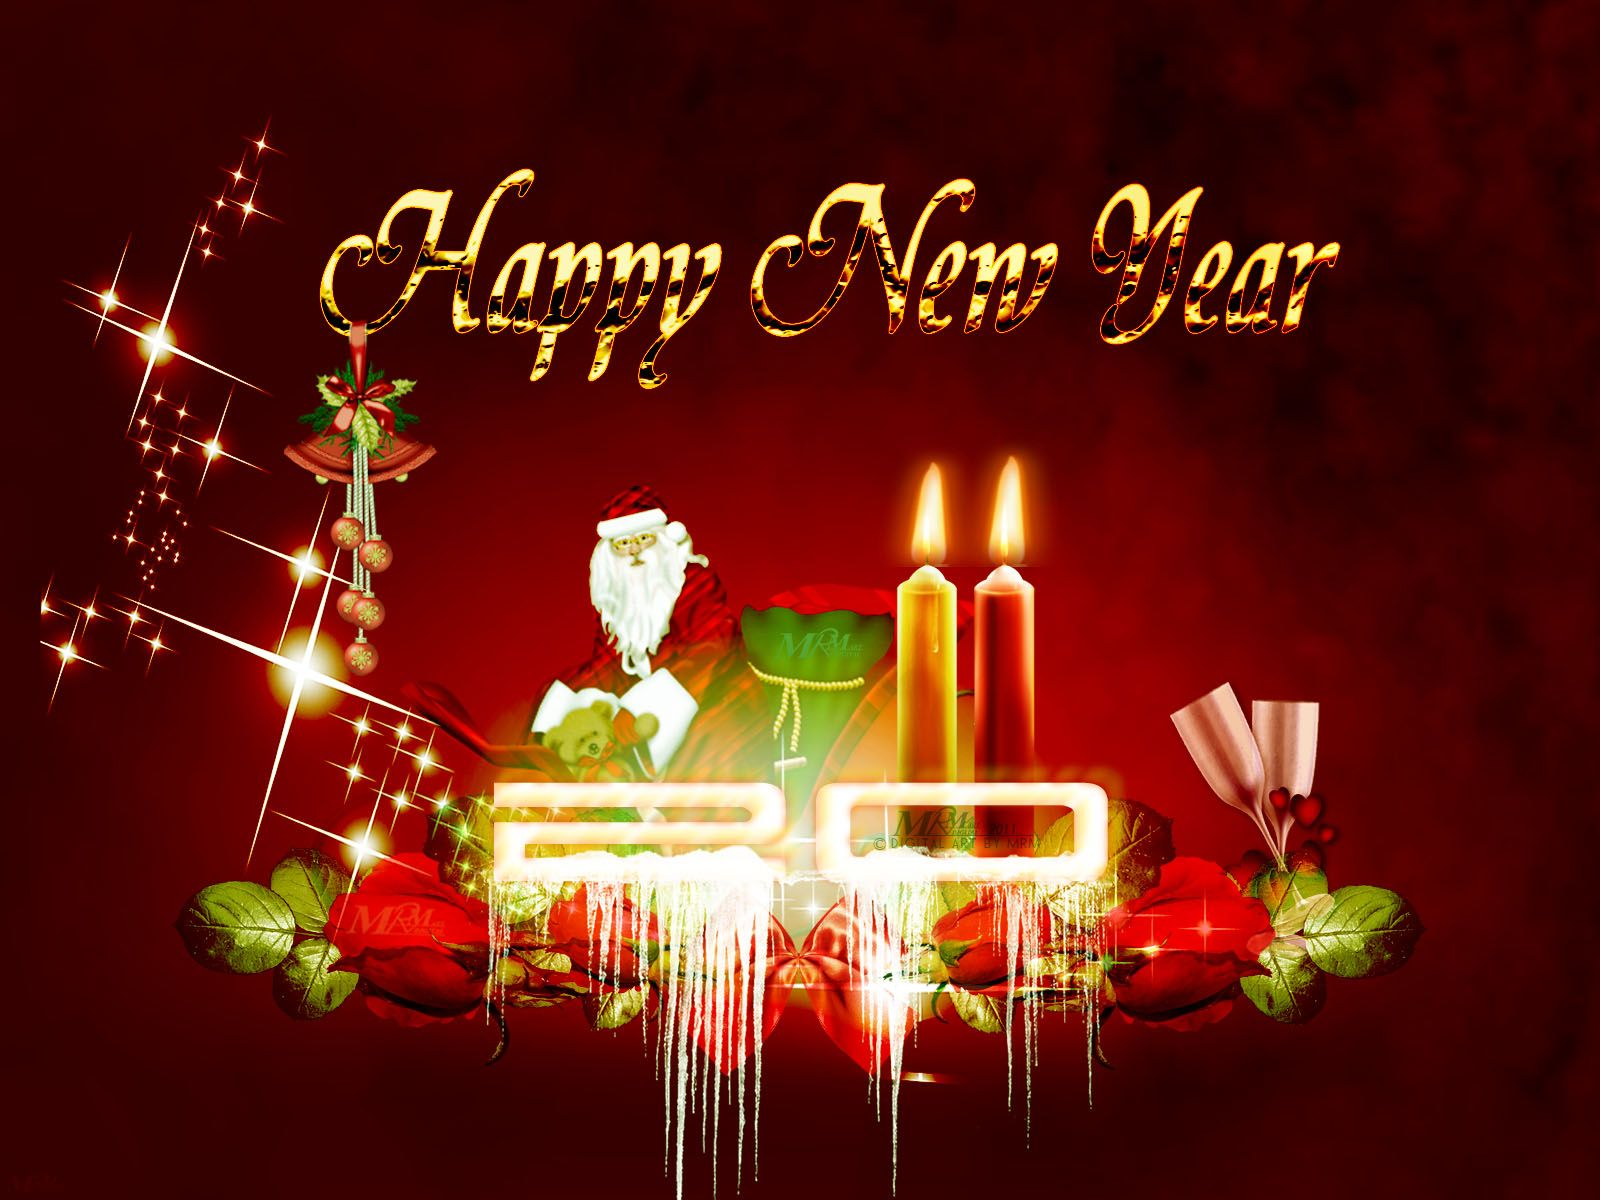 Happy new year greeting cards httphappynewyear wishes happy new year greeting cards httphappynewyear wishes wallpapers 201512happy new year wishes quotes message greeting cardsml m4hsunfo